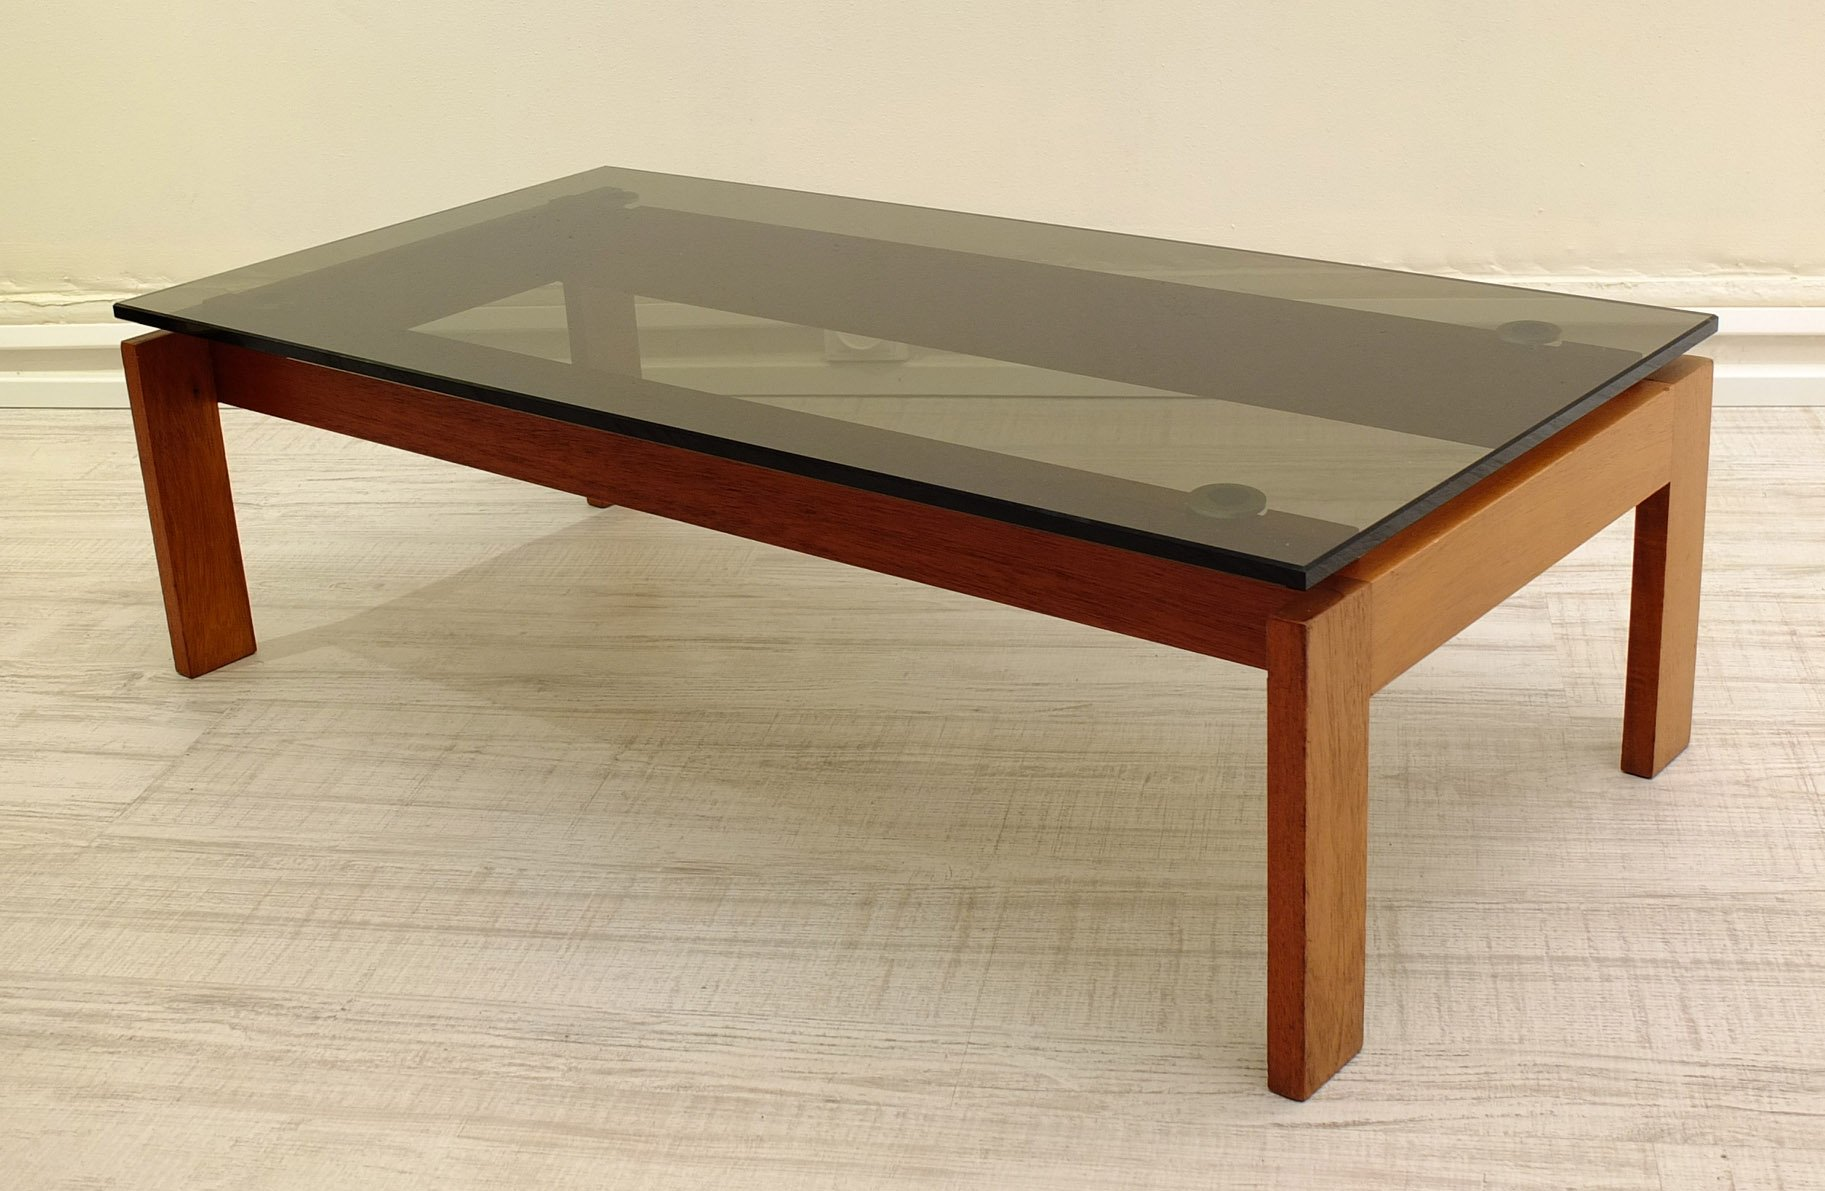 Danish Teak And Smoked Glass Coffee Table, 1970s